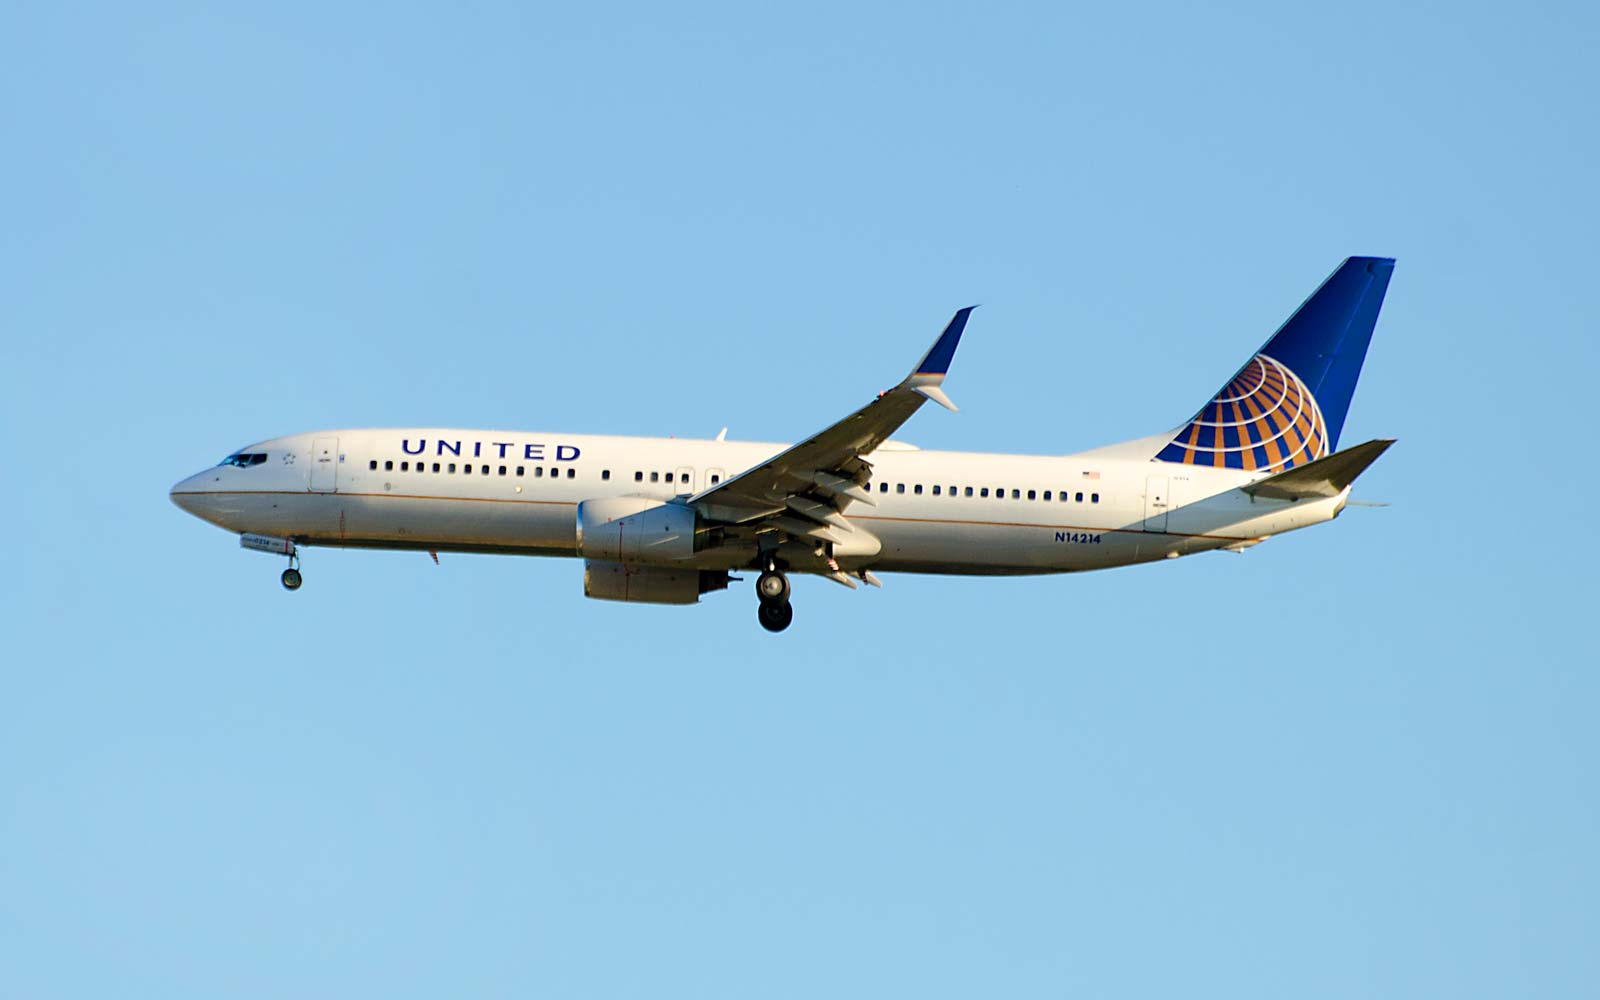 United Passengers Were Stranded on a Freezing Plane for Over 14 Hours